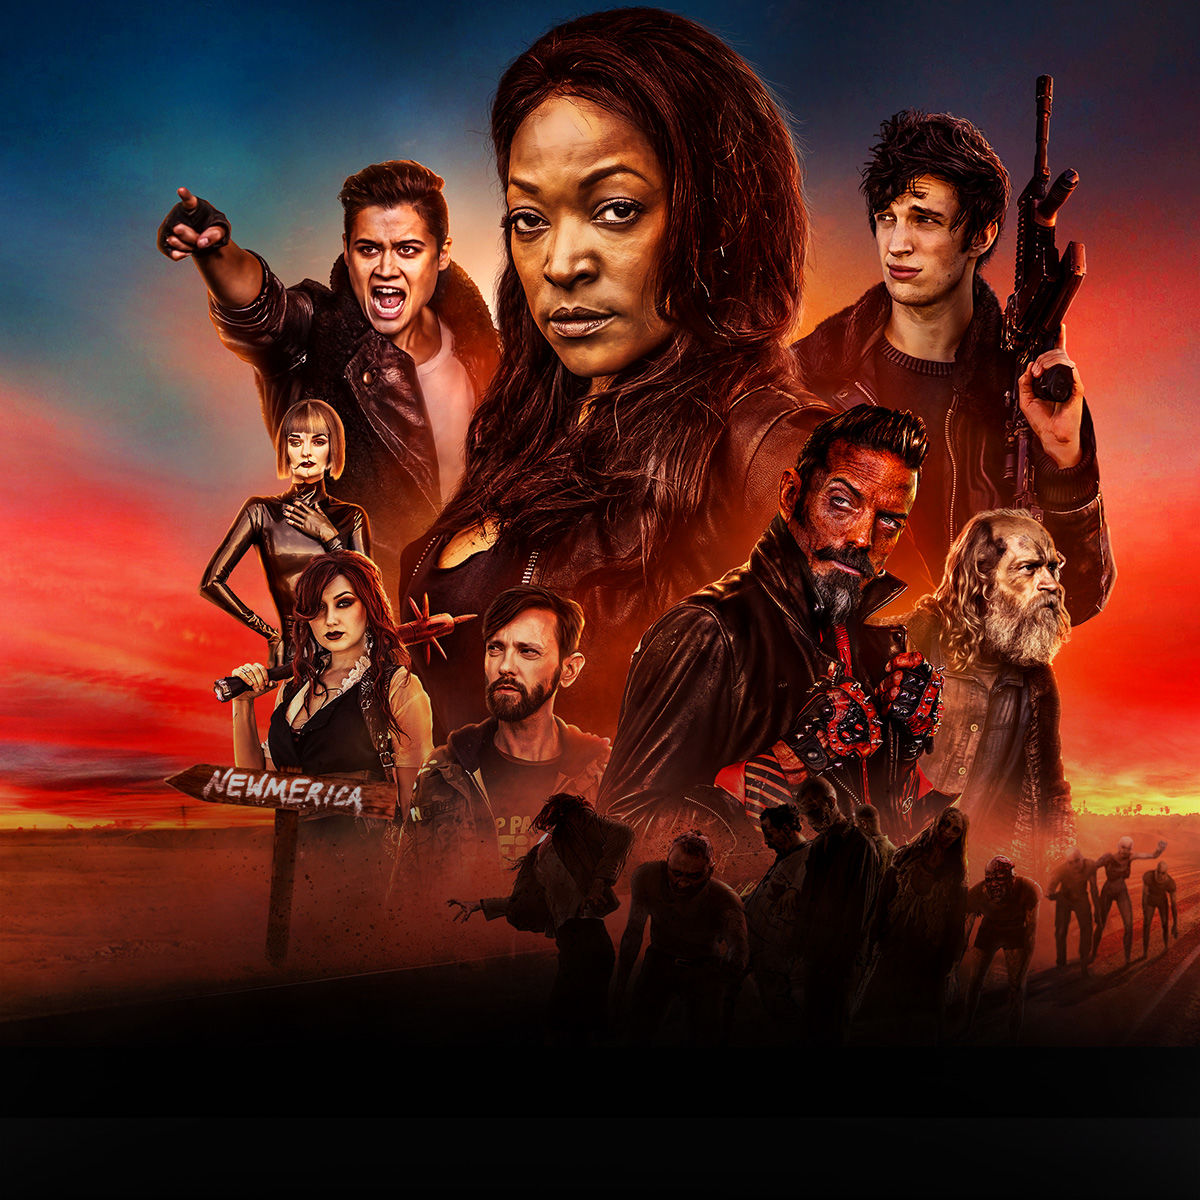 download z nation season 1 episode 2